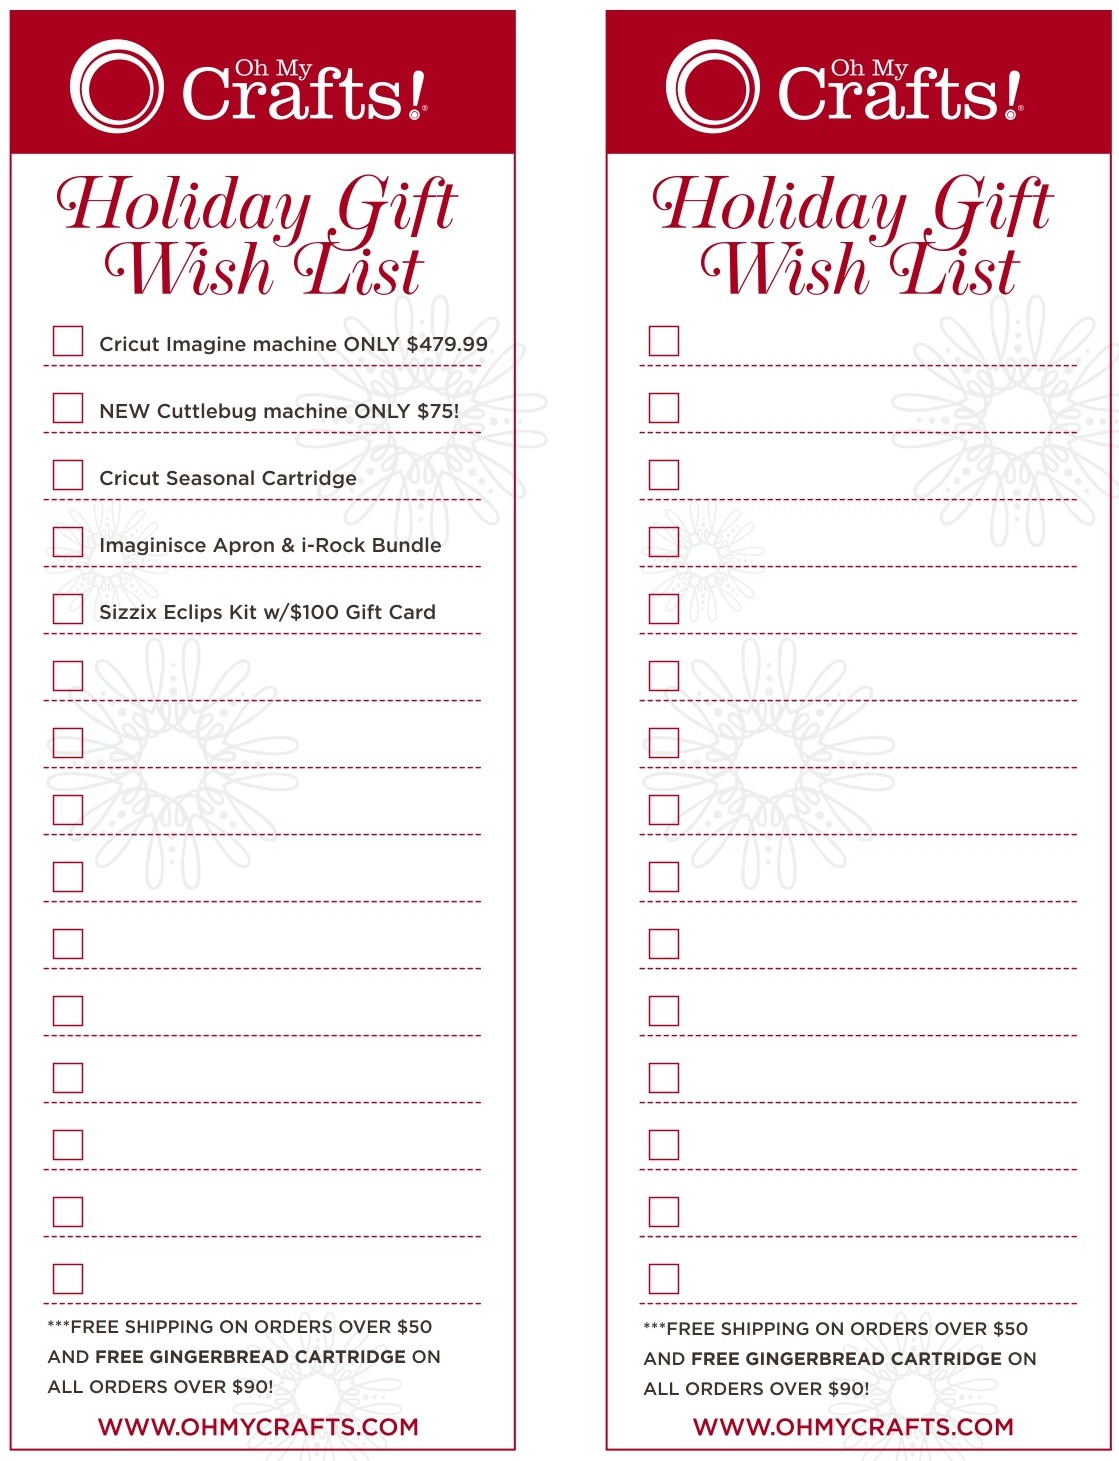 Oh My Crafts Blog: OMC Holiday Gift Wish List!